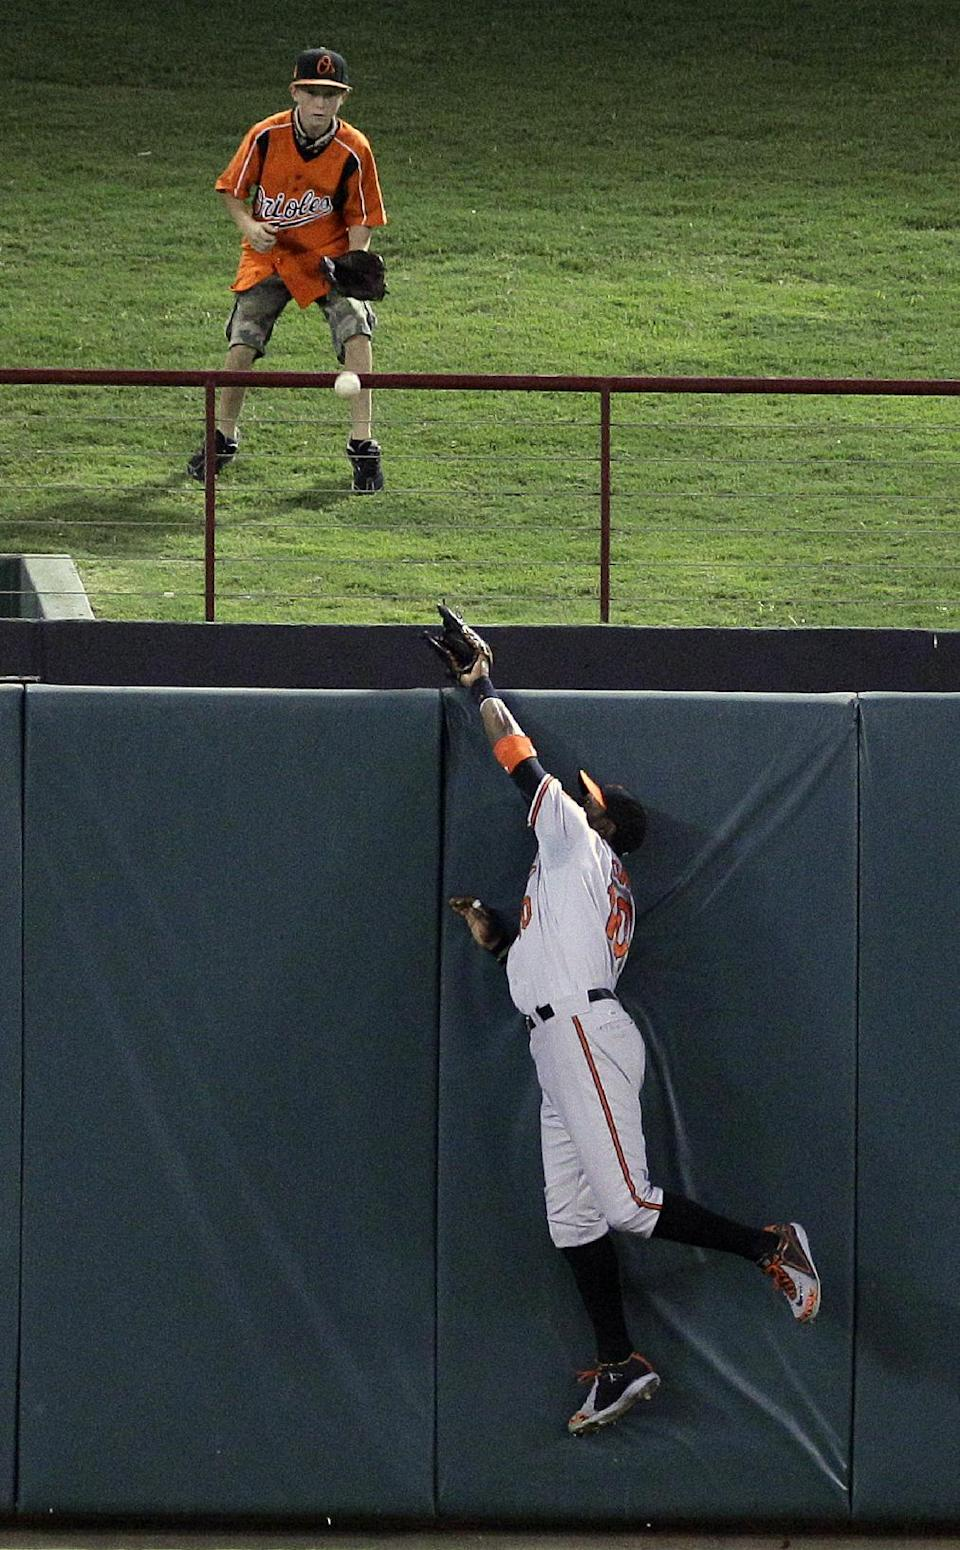 Baltimore Orioles center fielder Adam Jones (10) cannot reach the solo home run hit by Texas Rangers Adrian Beltre as a young fan, top, waits for the ball during the fourth inning of a baseball game on Wednesday, Aug. 22, 2012, in Arlington, Texas. (AP Photo/LM Otero)